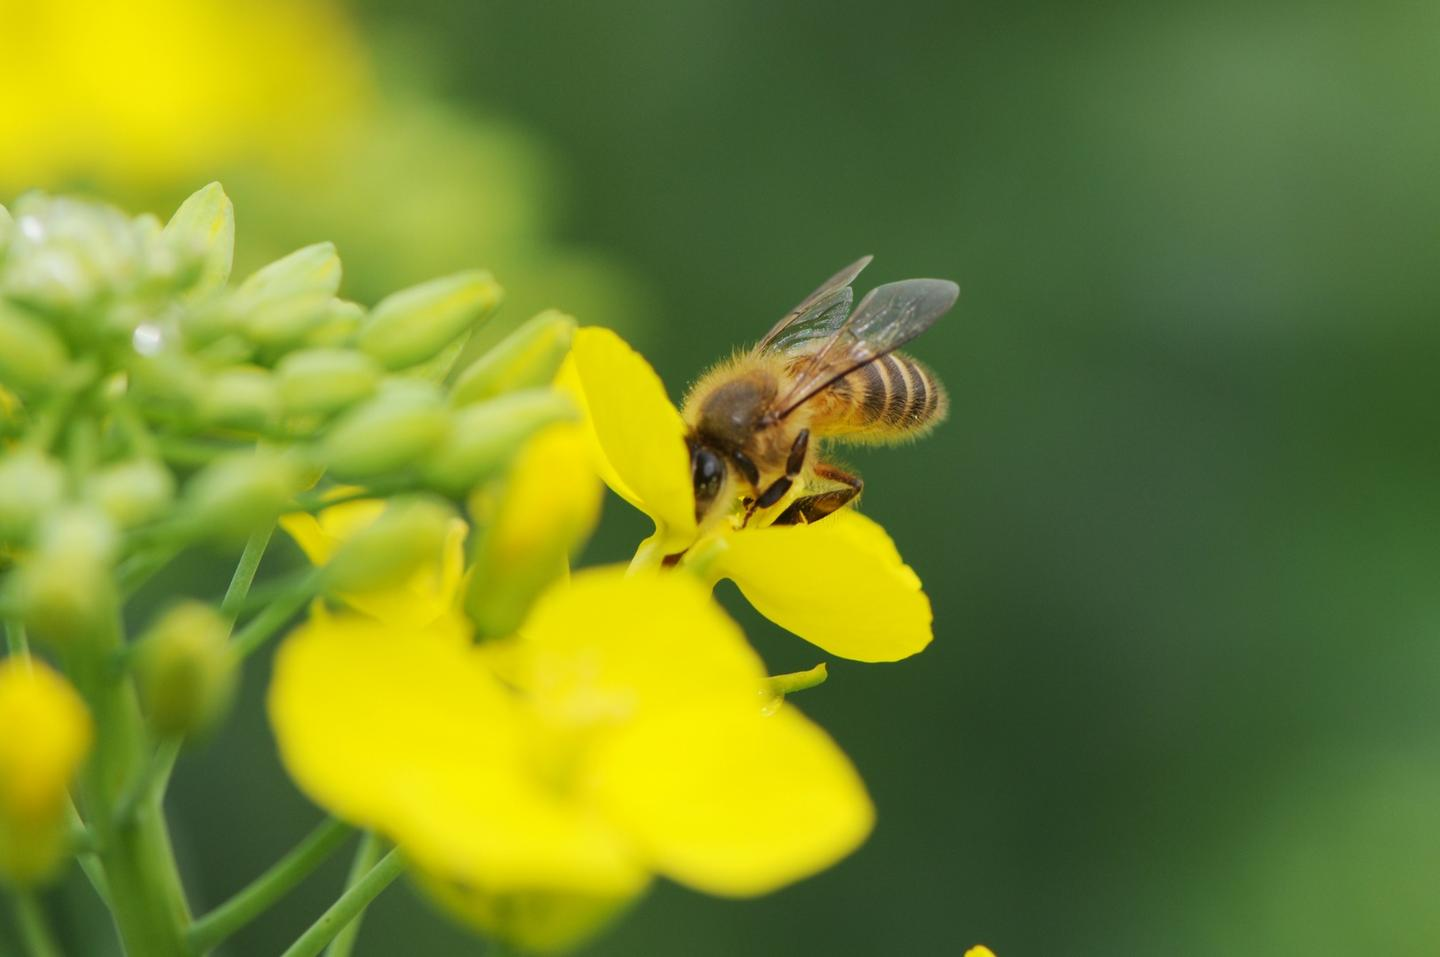 EU member states have voted in favor of a complete ban on the outdoor use of three insecticides known to be harmful to bees